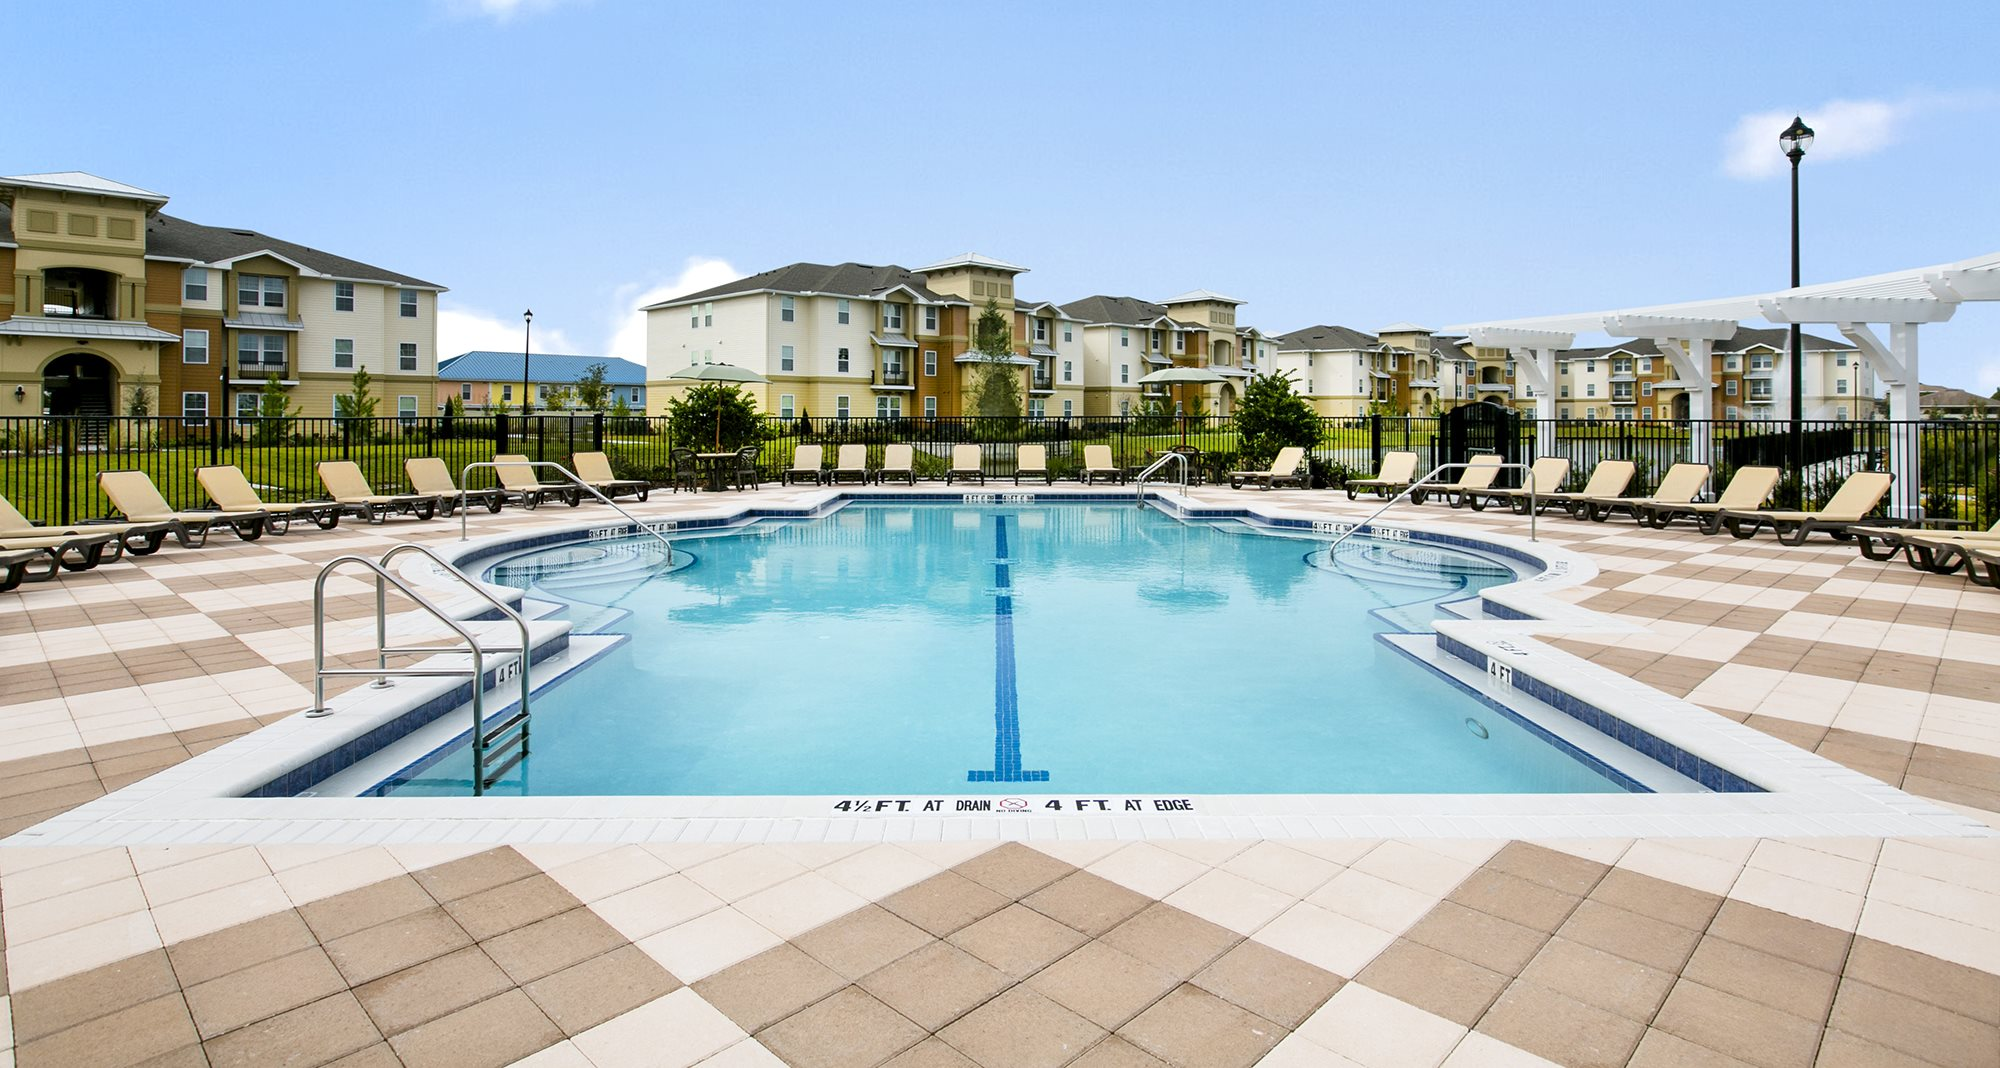 Heritage Park Apartments for rent in Kissimmee, FL. Make this community your new home or visit other Concord Rents communities at ConcordRents.com. Pool